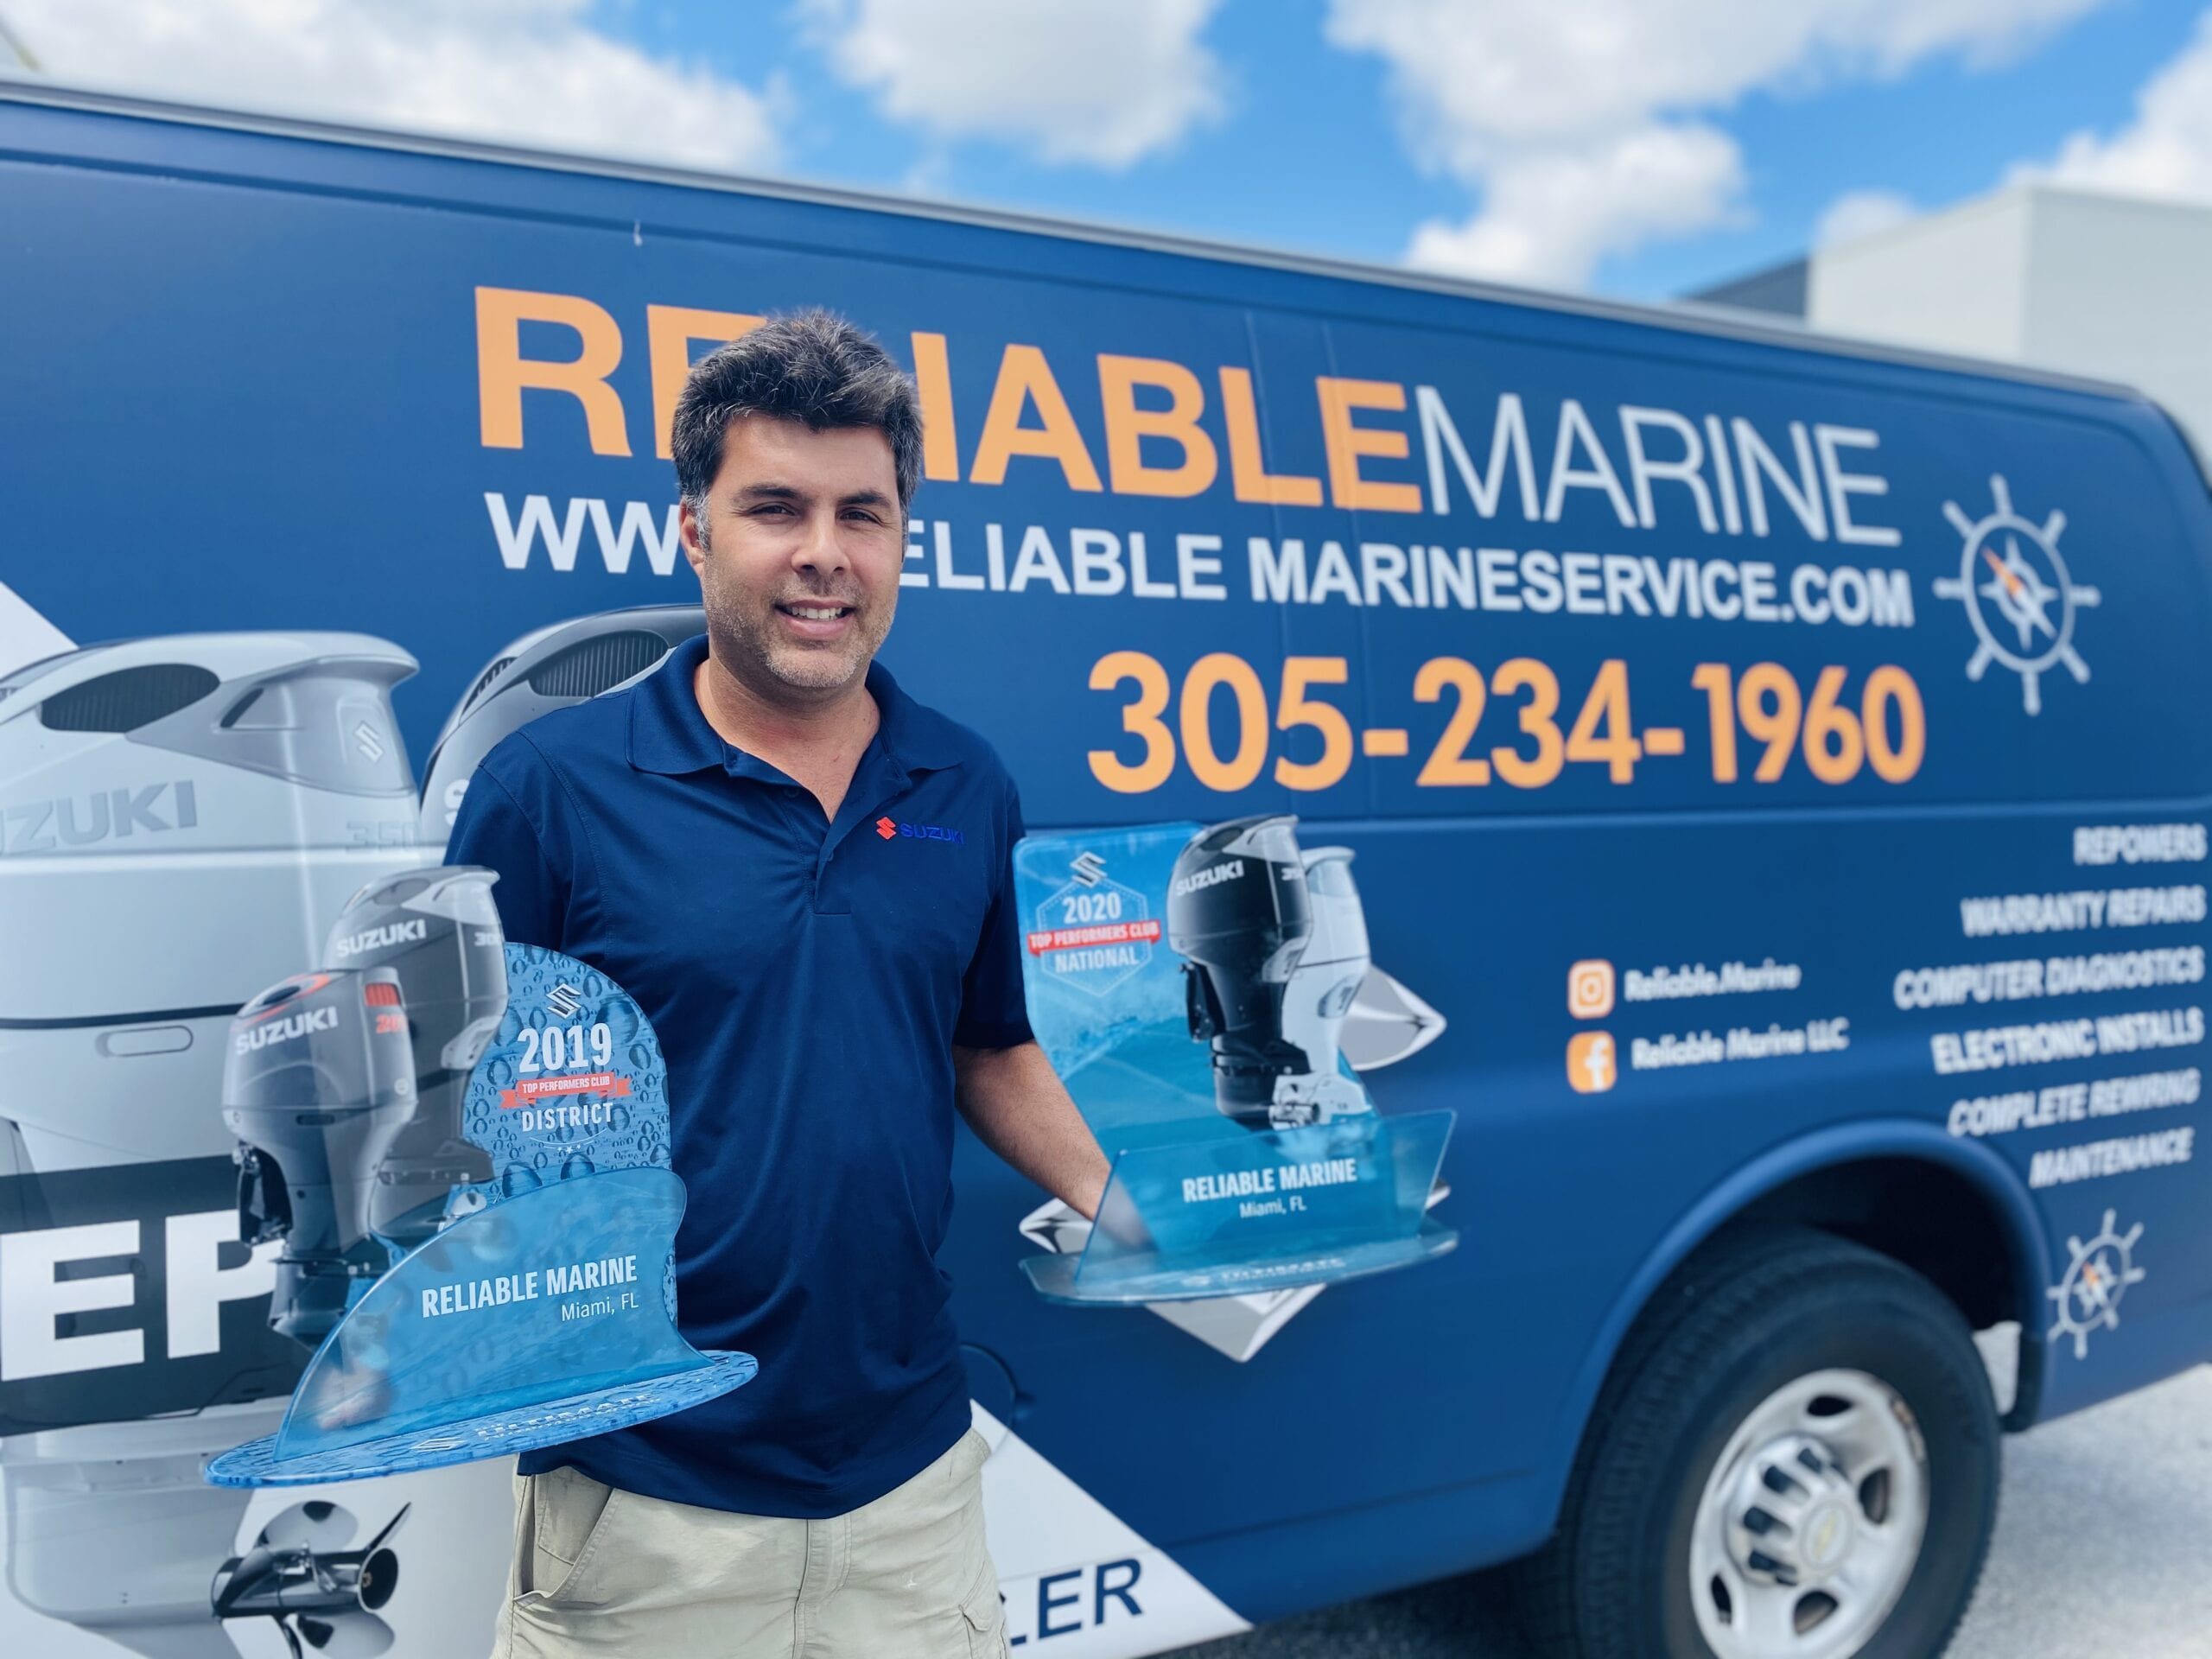 Reliable Marine Services